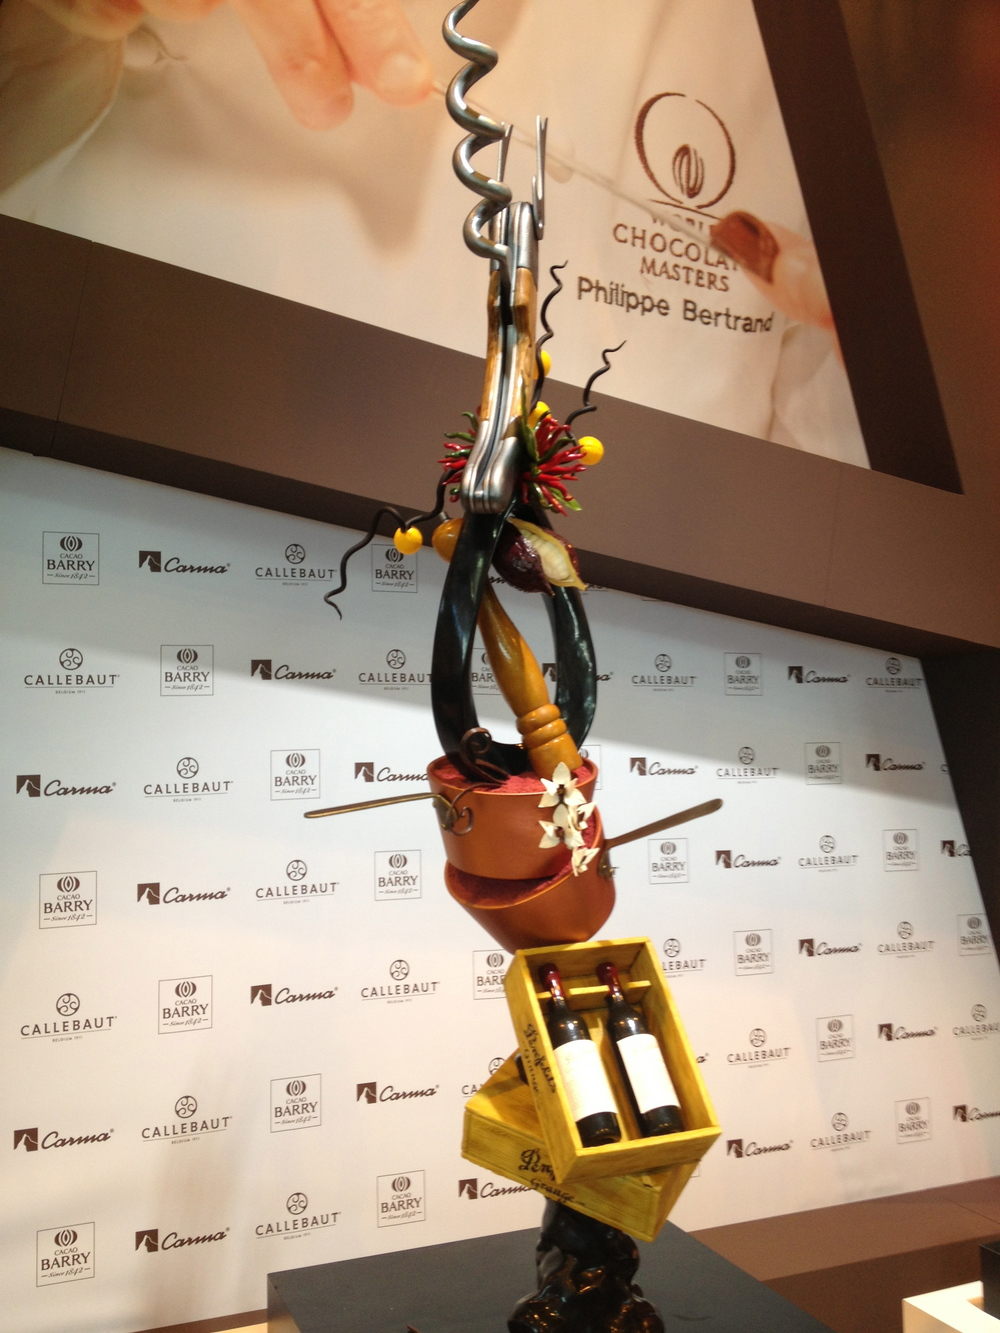 Australia's Chocolate Showpiece